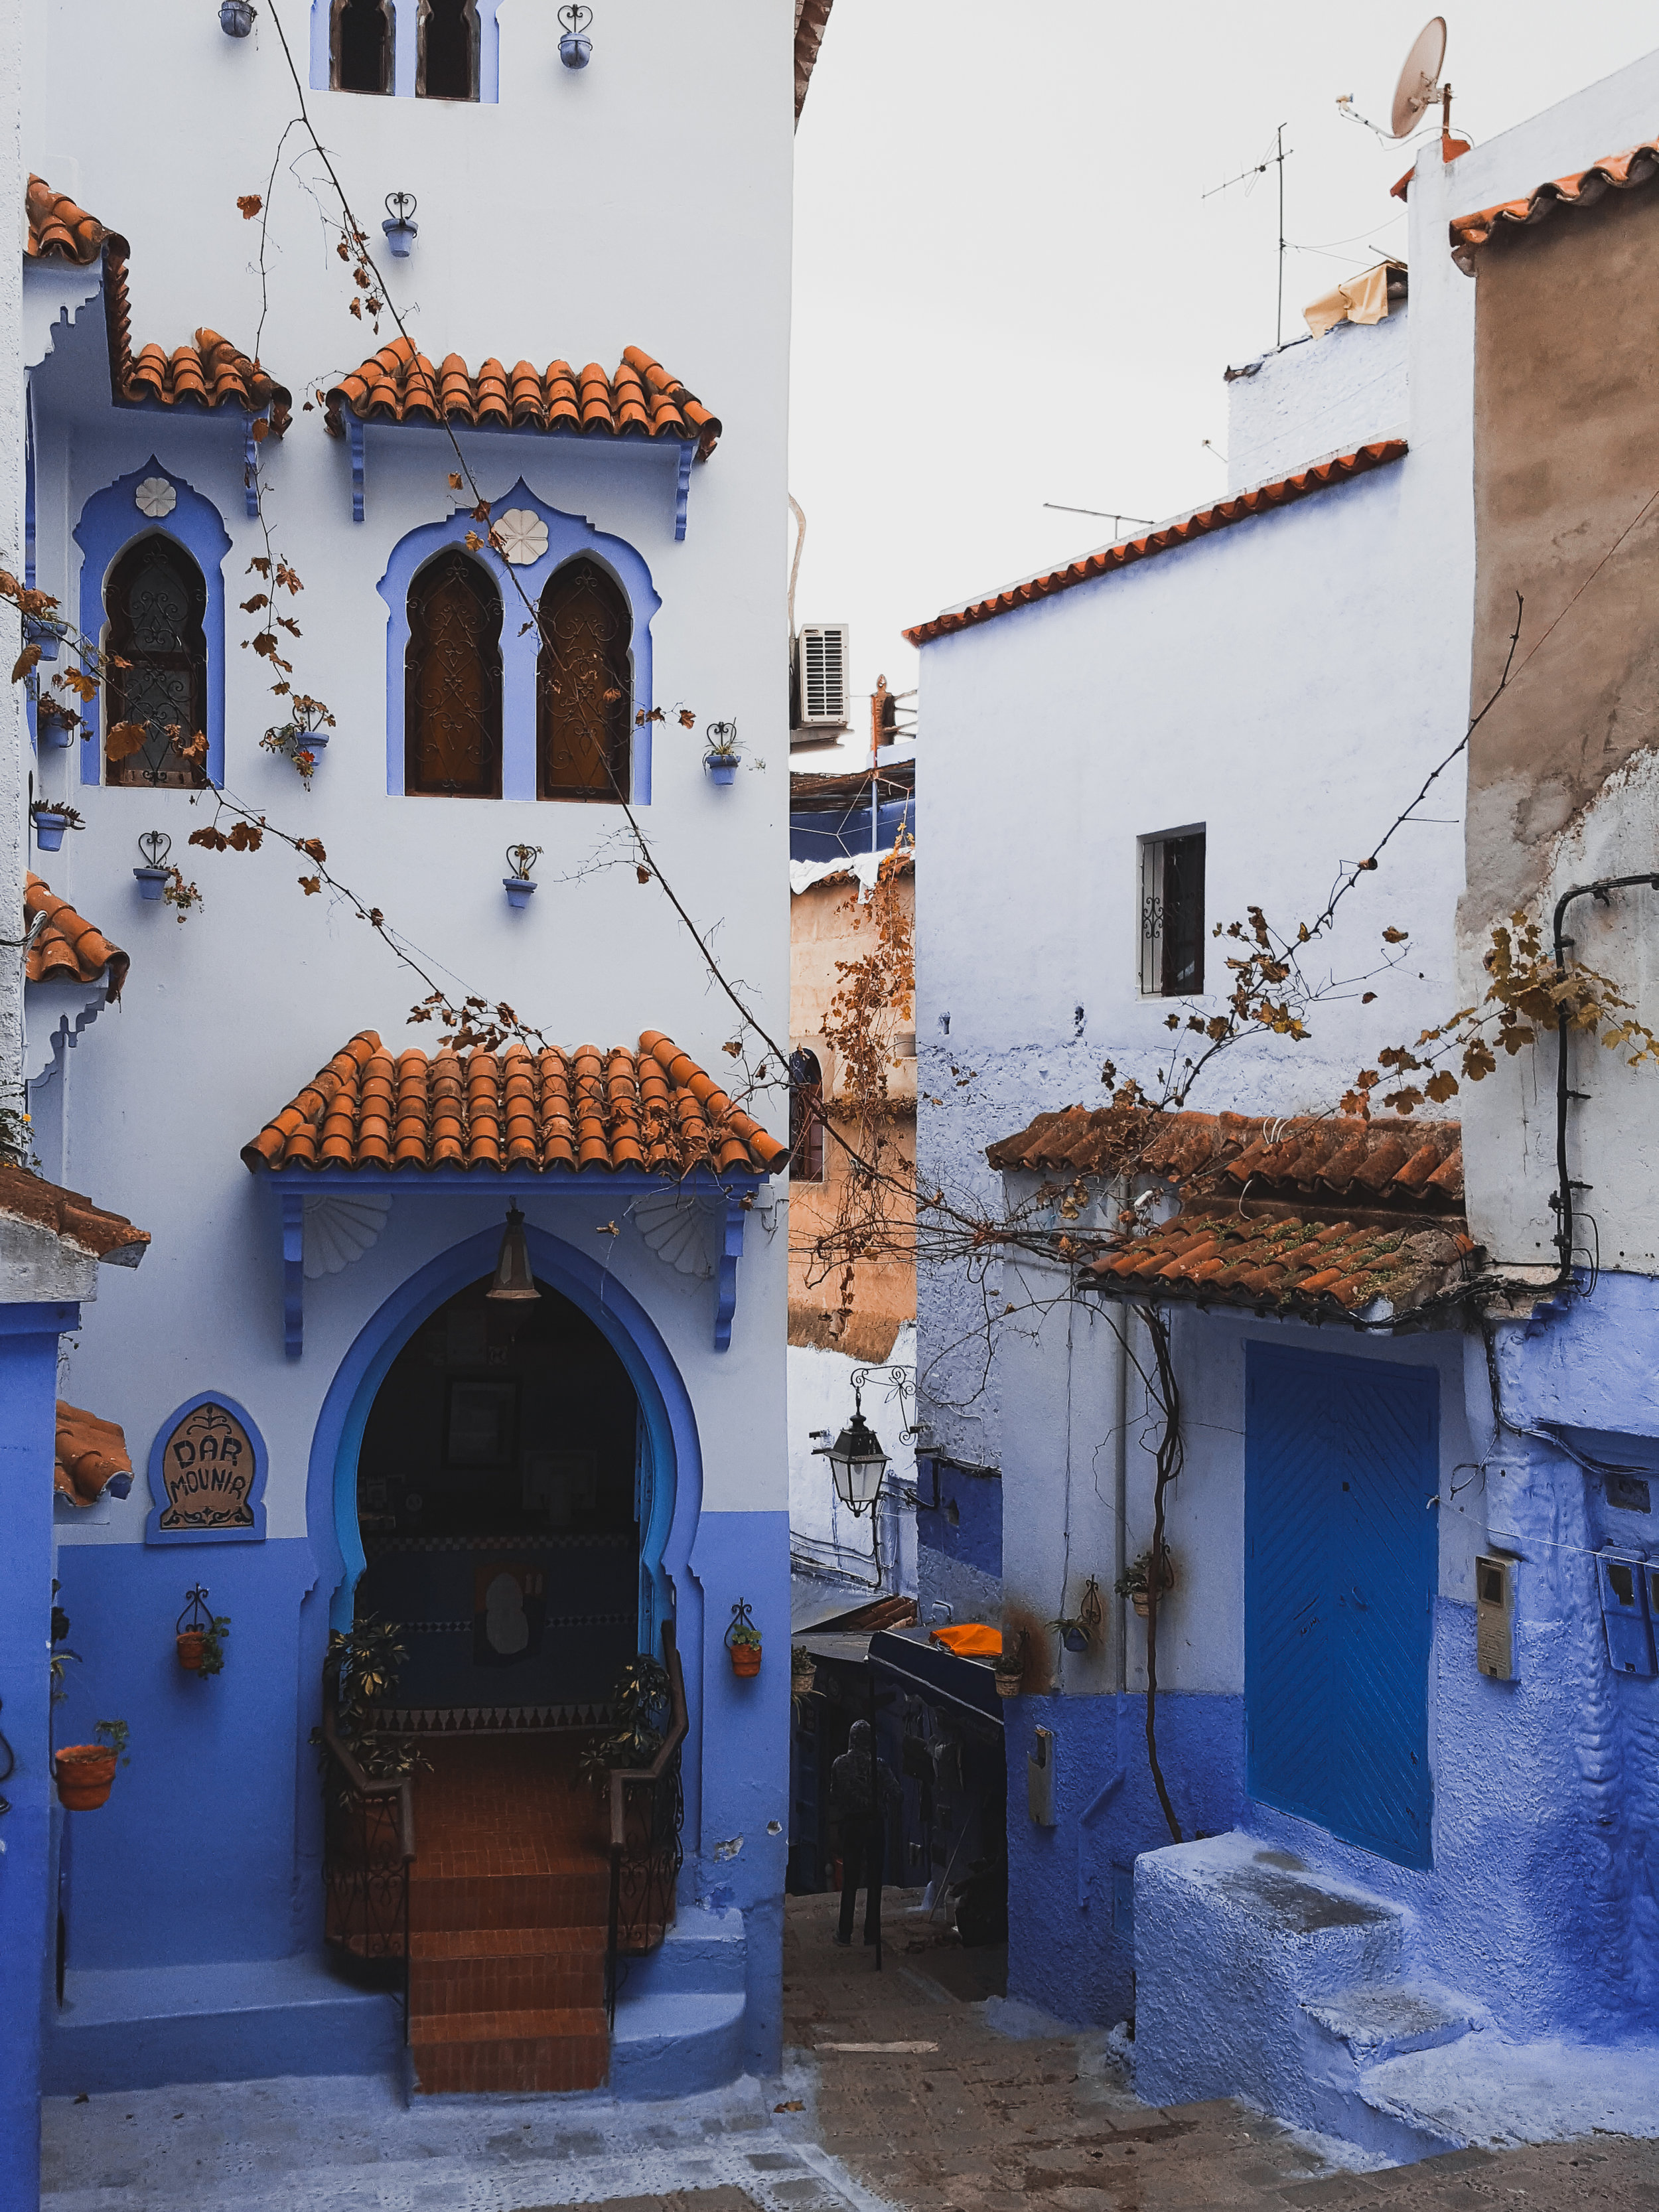 Orange and blue homes in Chefchaouen, Morocco